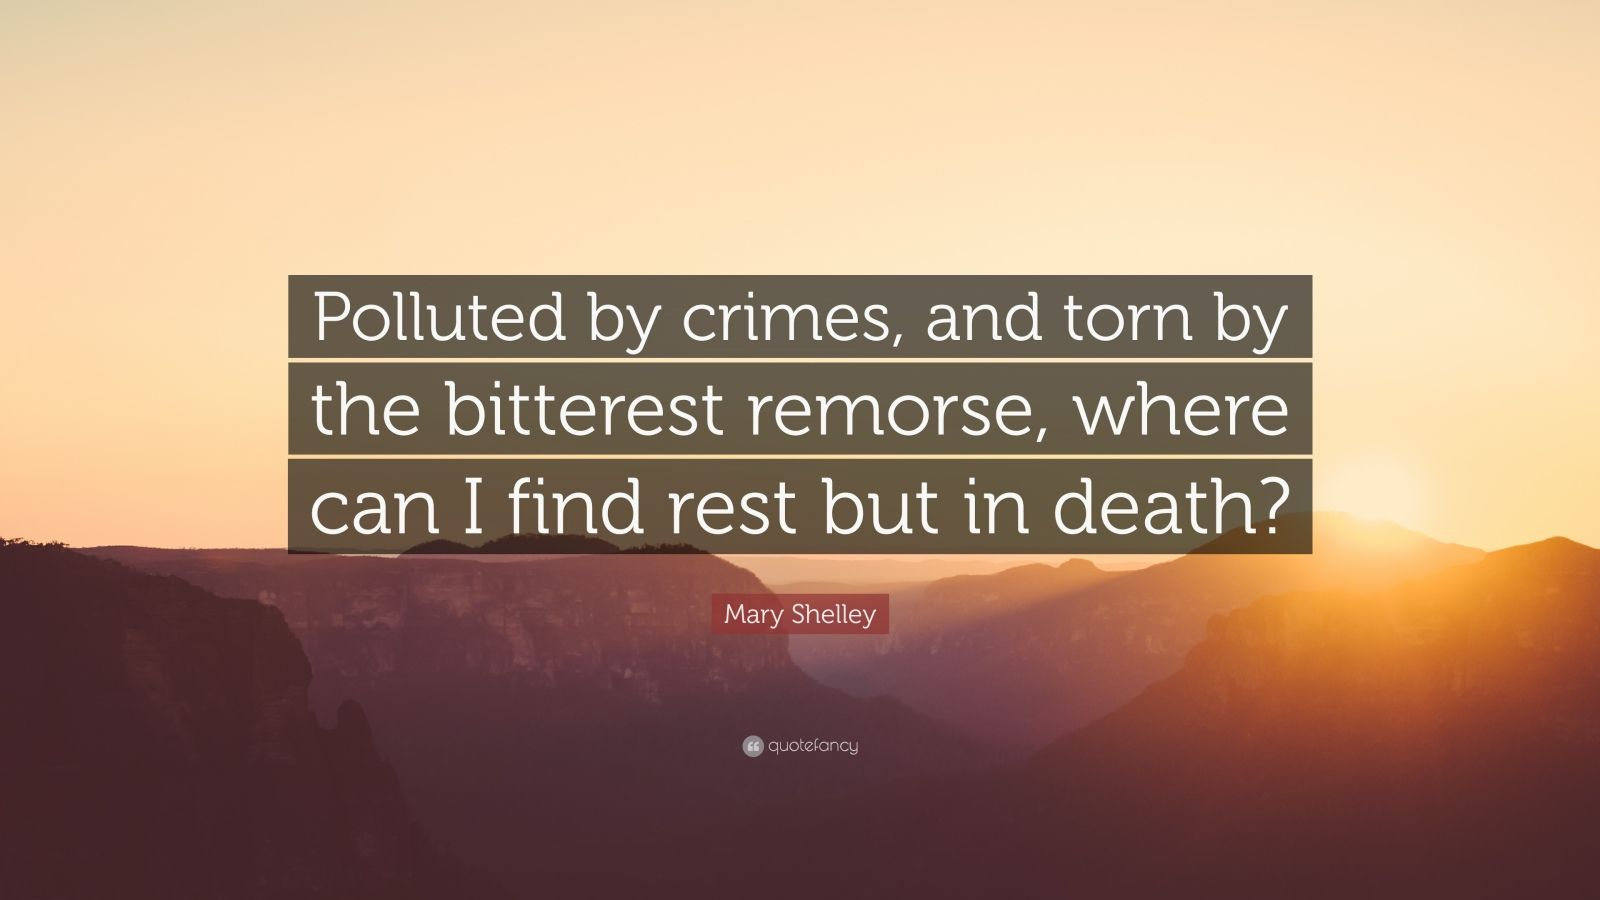 """Mary Shelley Quote: """"Polluted by crimes, and torn by the bitterest remorse, where can I find rest but in death?"""""""